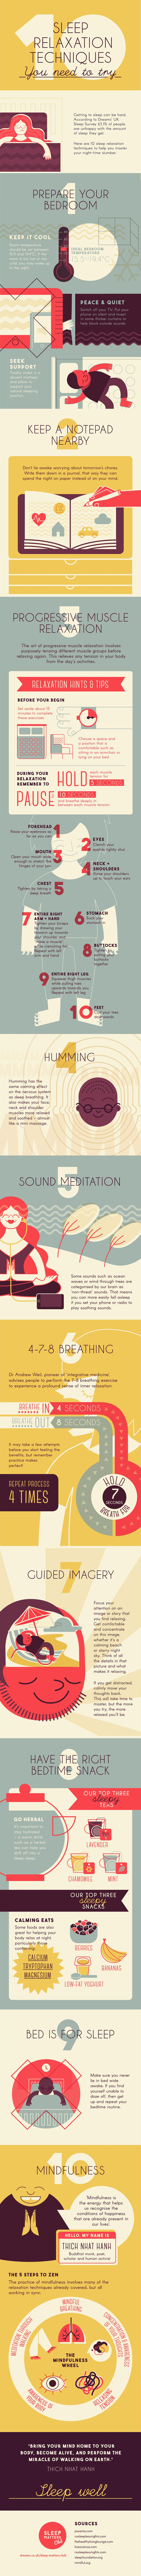 Keeping a calm mind is the first step to mental healthiness, and sleep is a good way to rejuvenate the mind. Practice these 10 Sleep Relaxation techniques to get a full night's recharge.